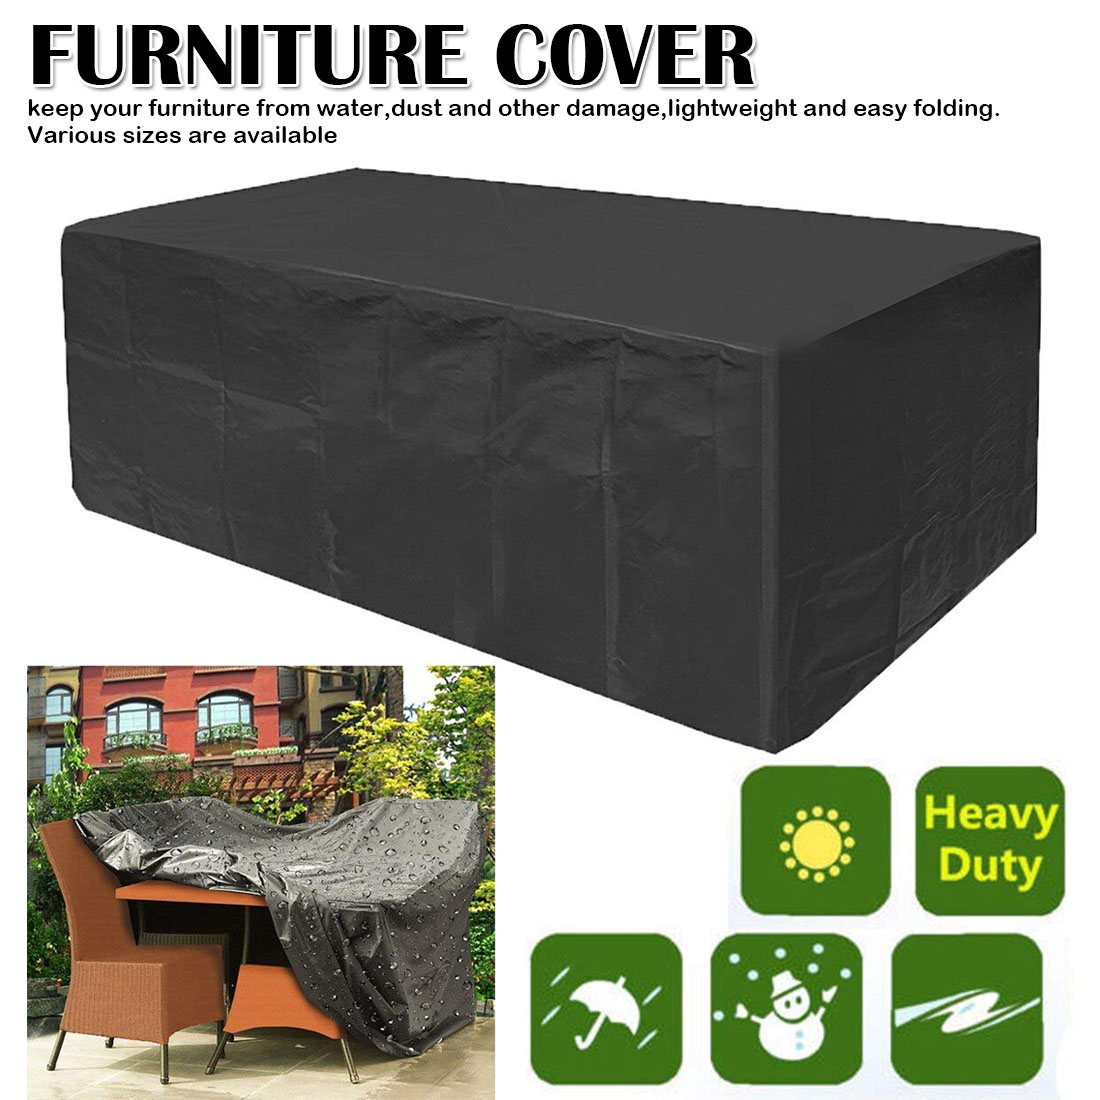 Garden Outdoor Patio Protective Case Oxford Furniture Dustproof Cover For Rattan Table Cube Chair Sofa Waterproof Rain